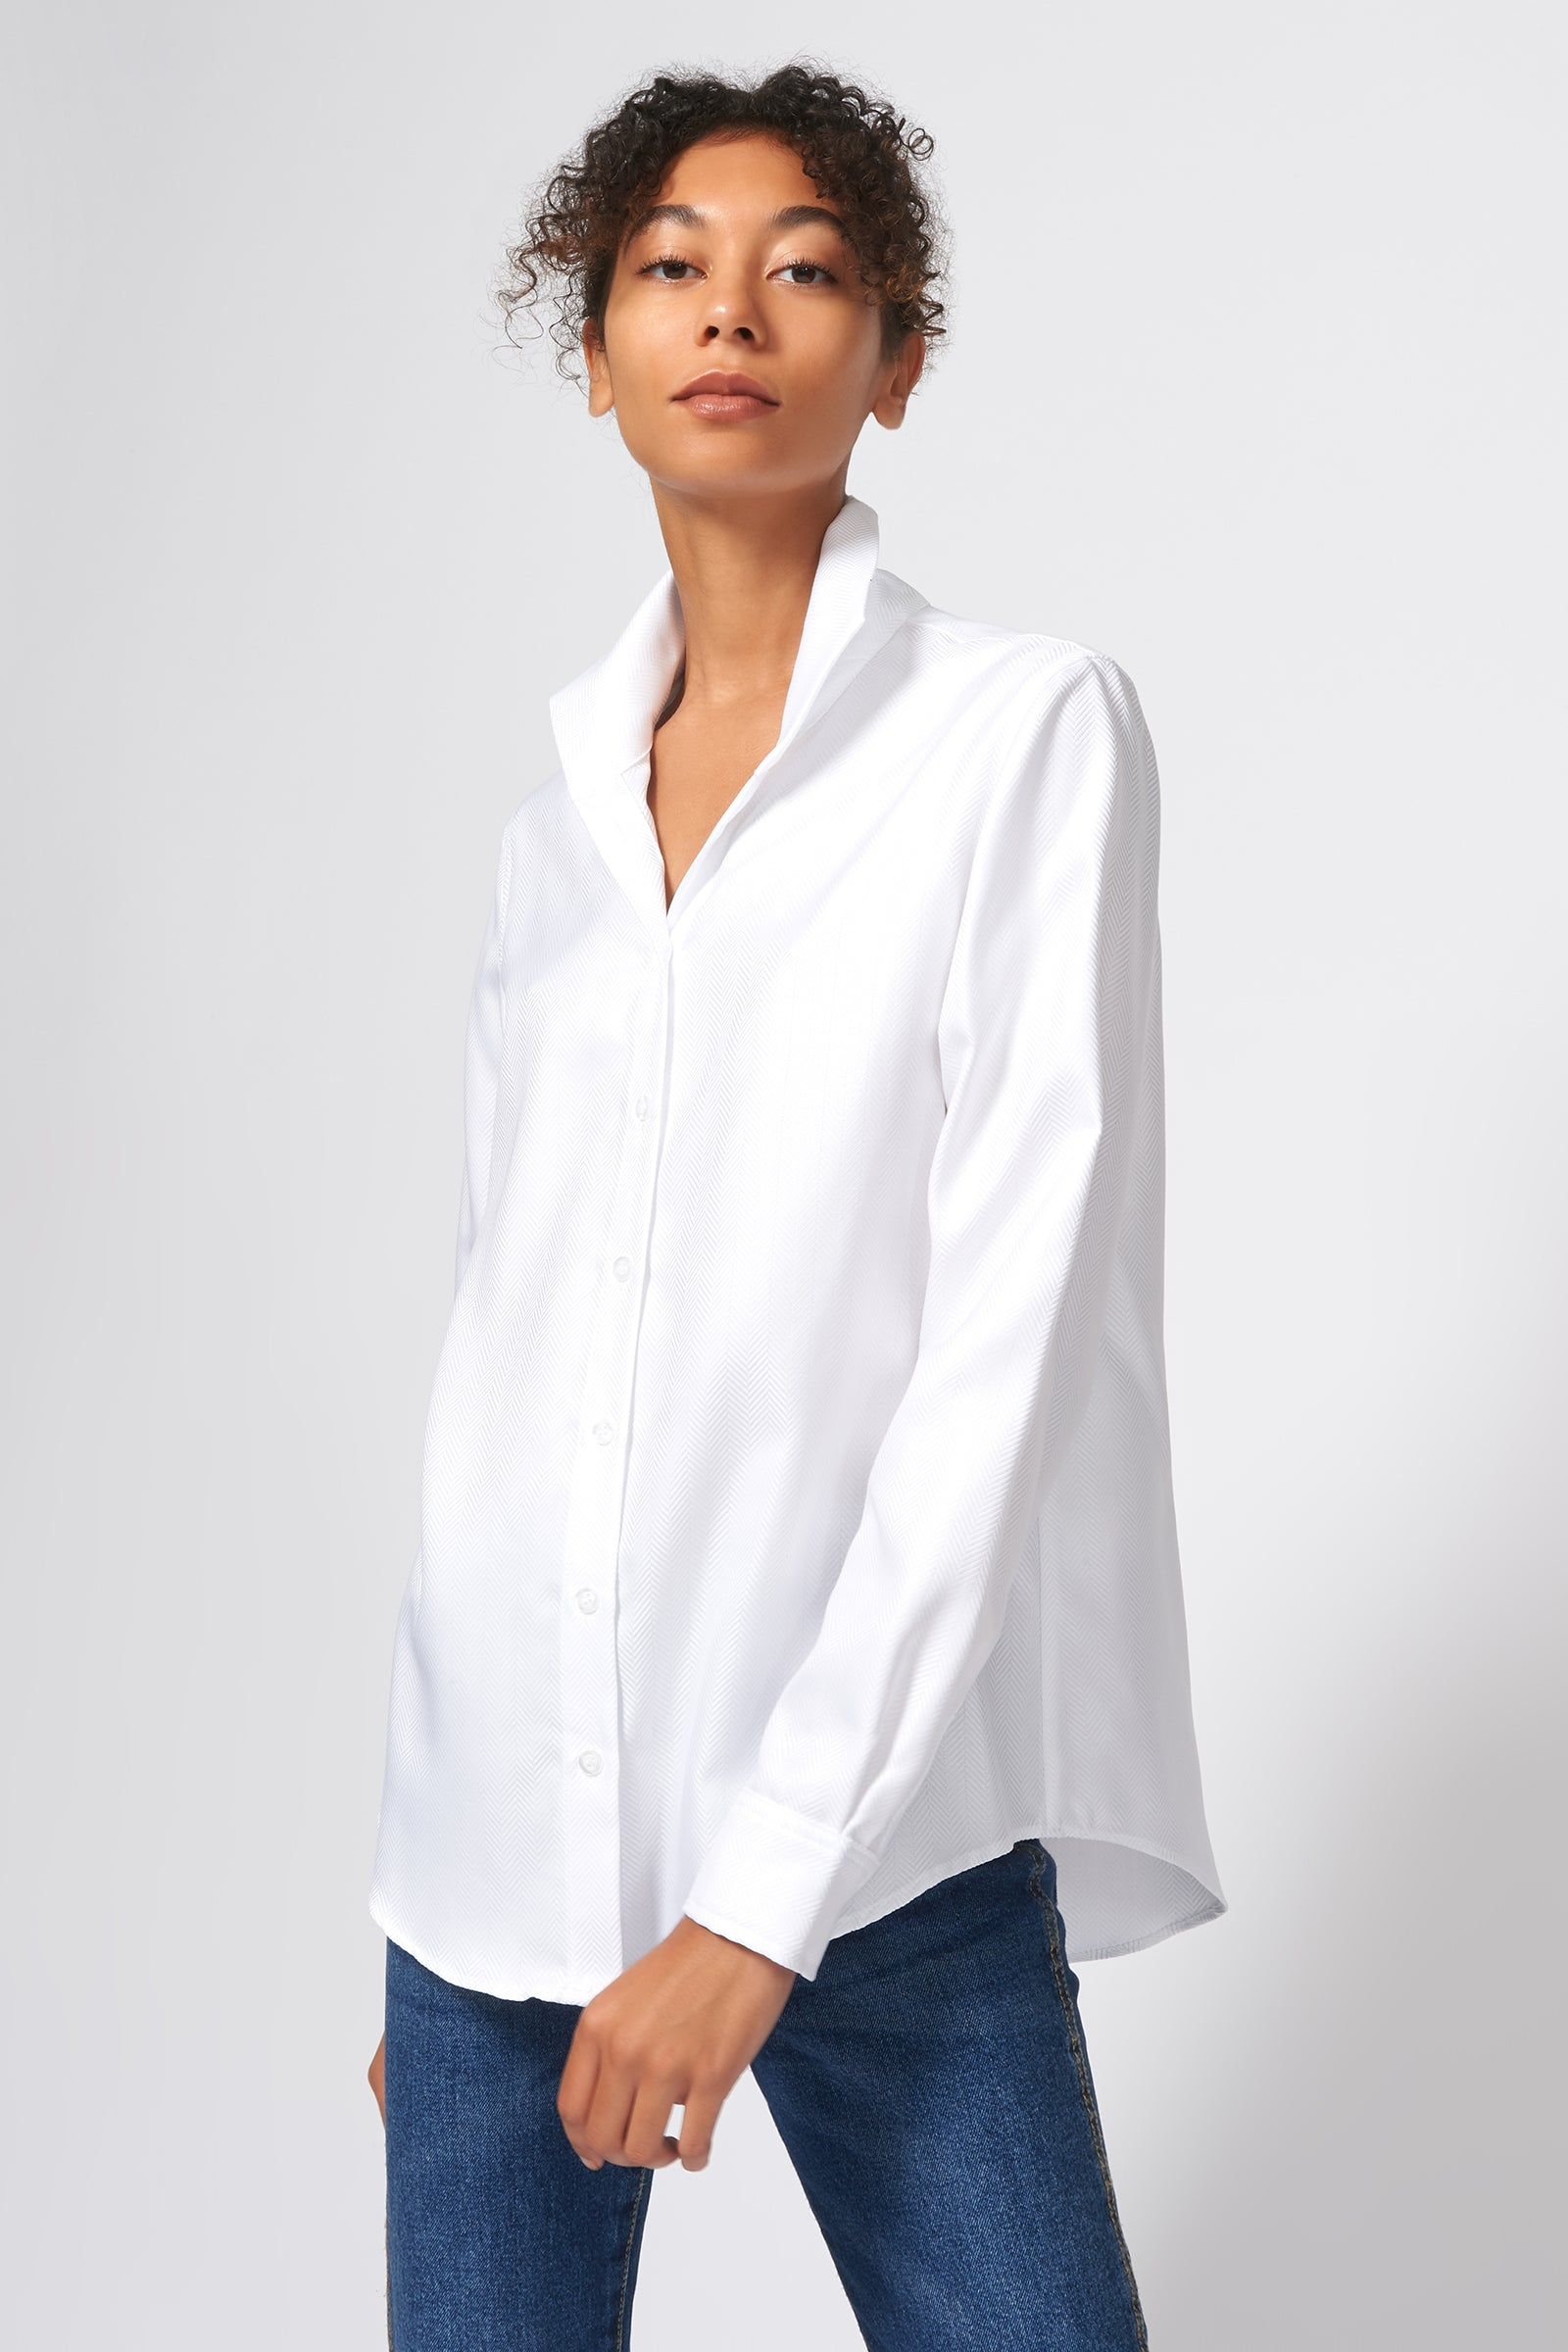 Kal Rieman Ginna Box Pleat Shirt in White Herringbone on Model Side View